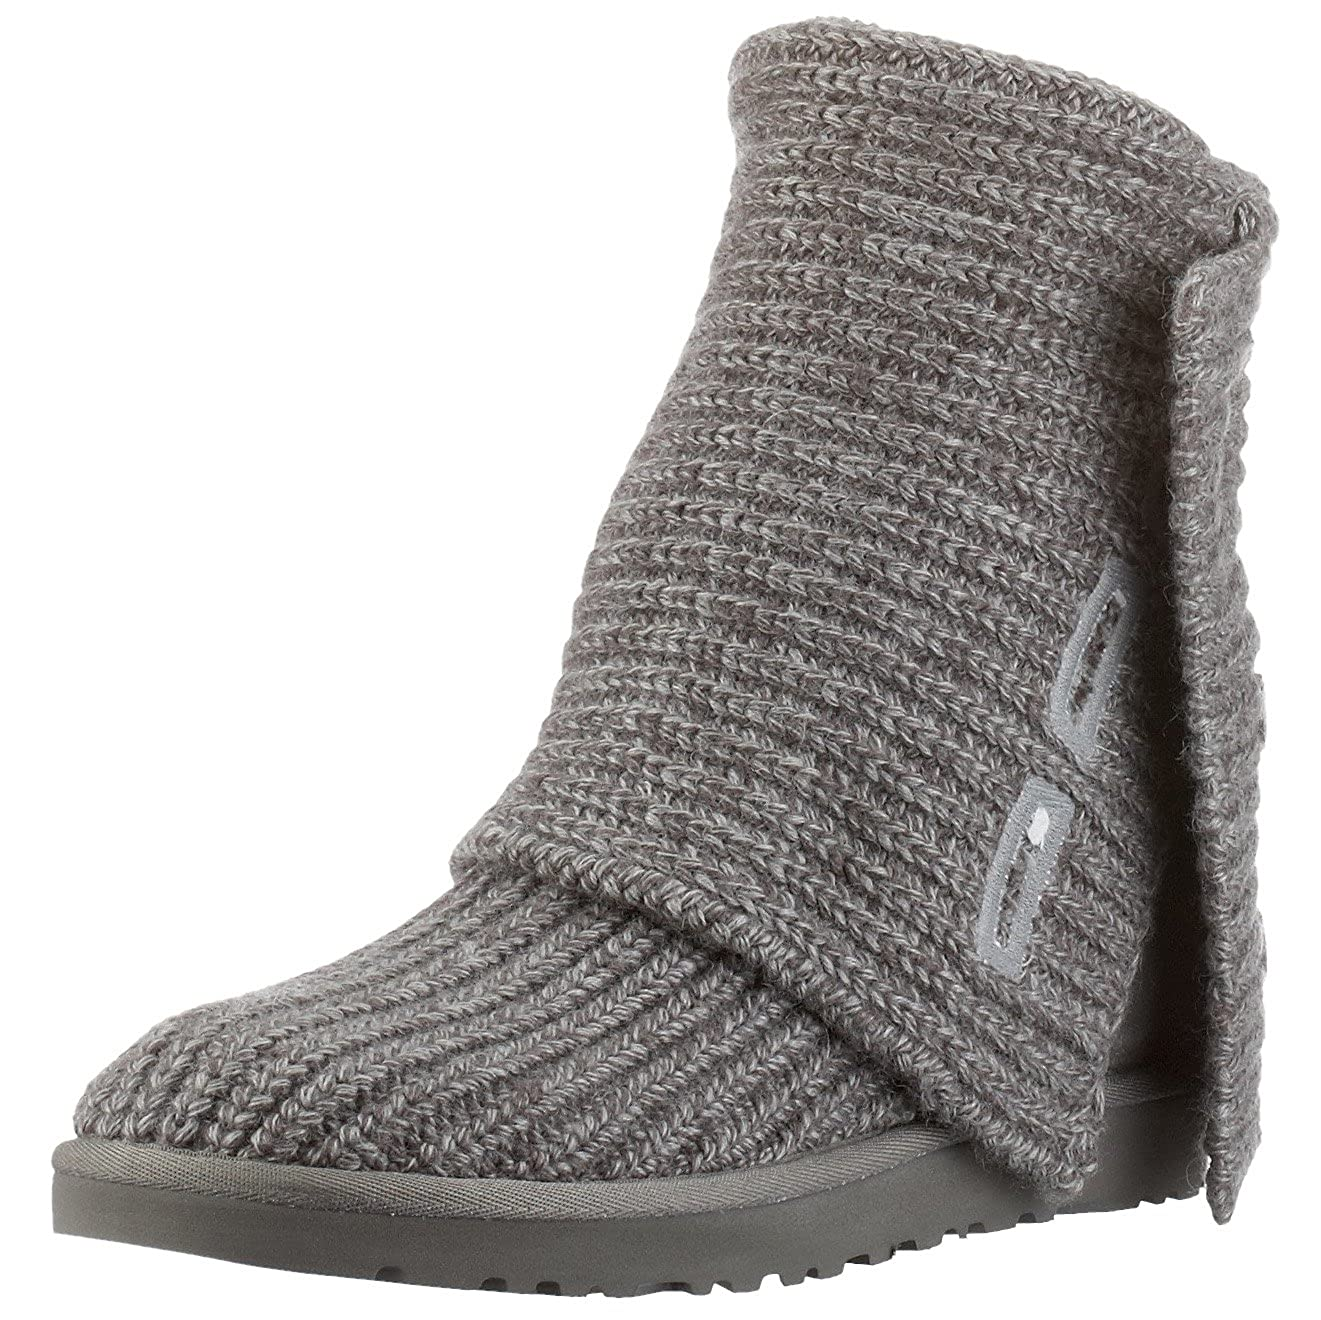 aae8a2ac039 promo code for ugg australia classic cardy stiefelette grey 7aecd 1aa19